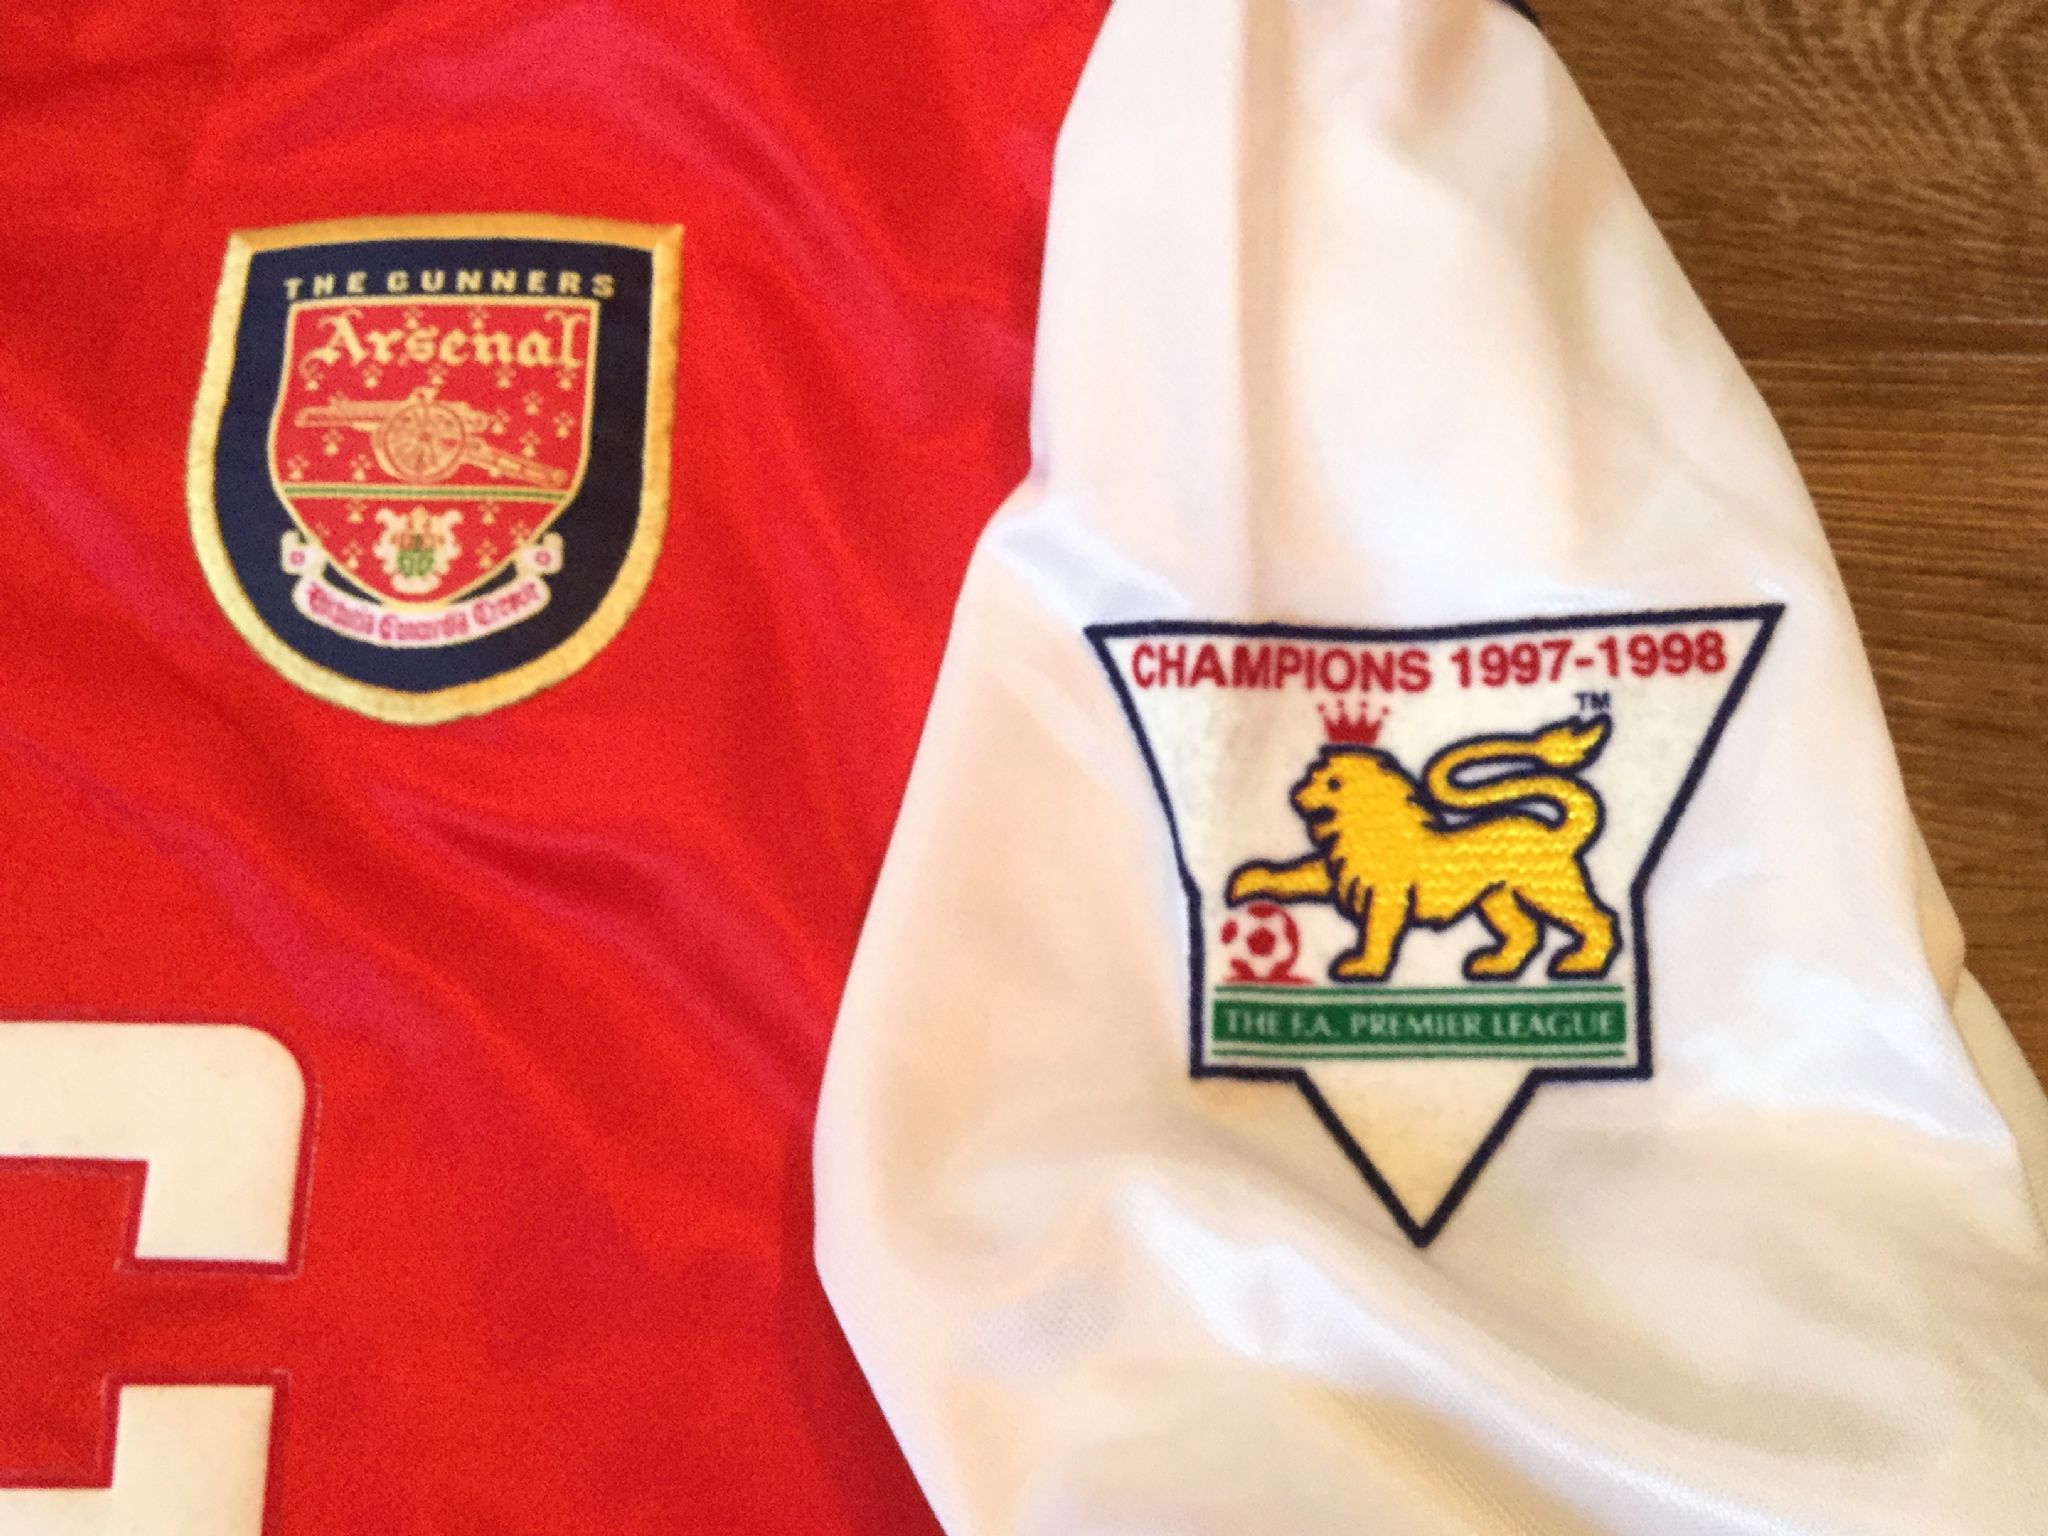 f7a4e2439 Global Classic Football Shirts   1998 Arsenal   Vintage Retro Old Soccer  Jersey